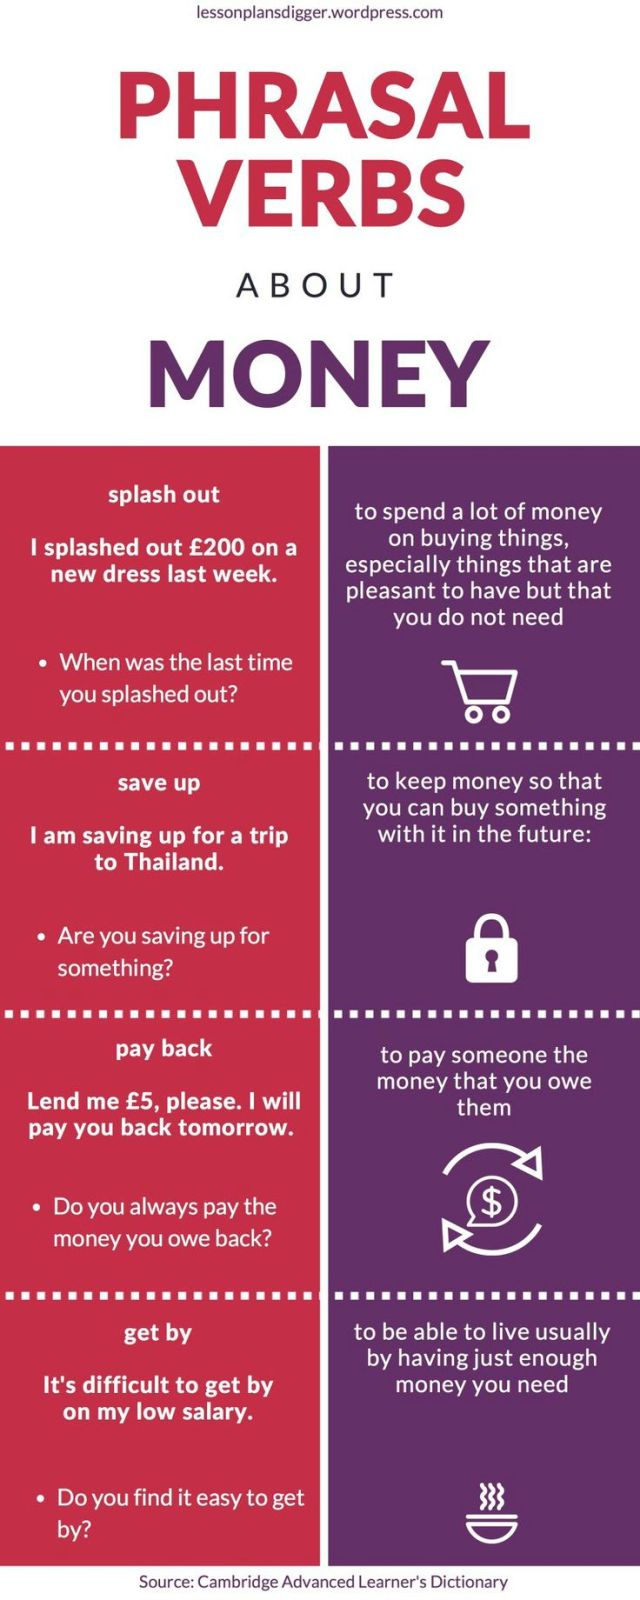 Money Phrasal Verbs ISE I Trinity English Exam subject area vocabulary